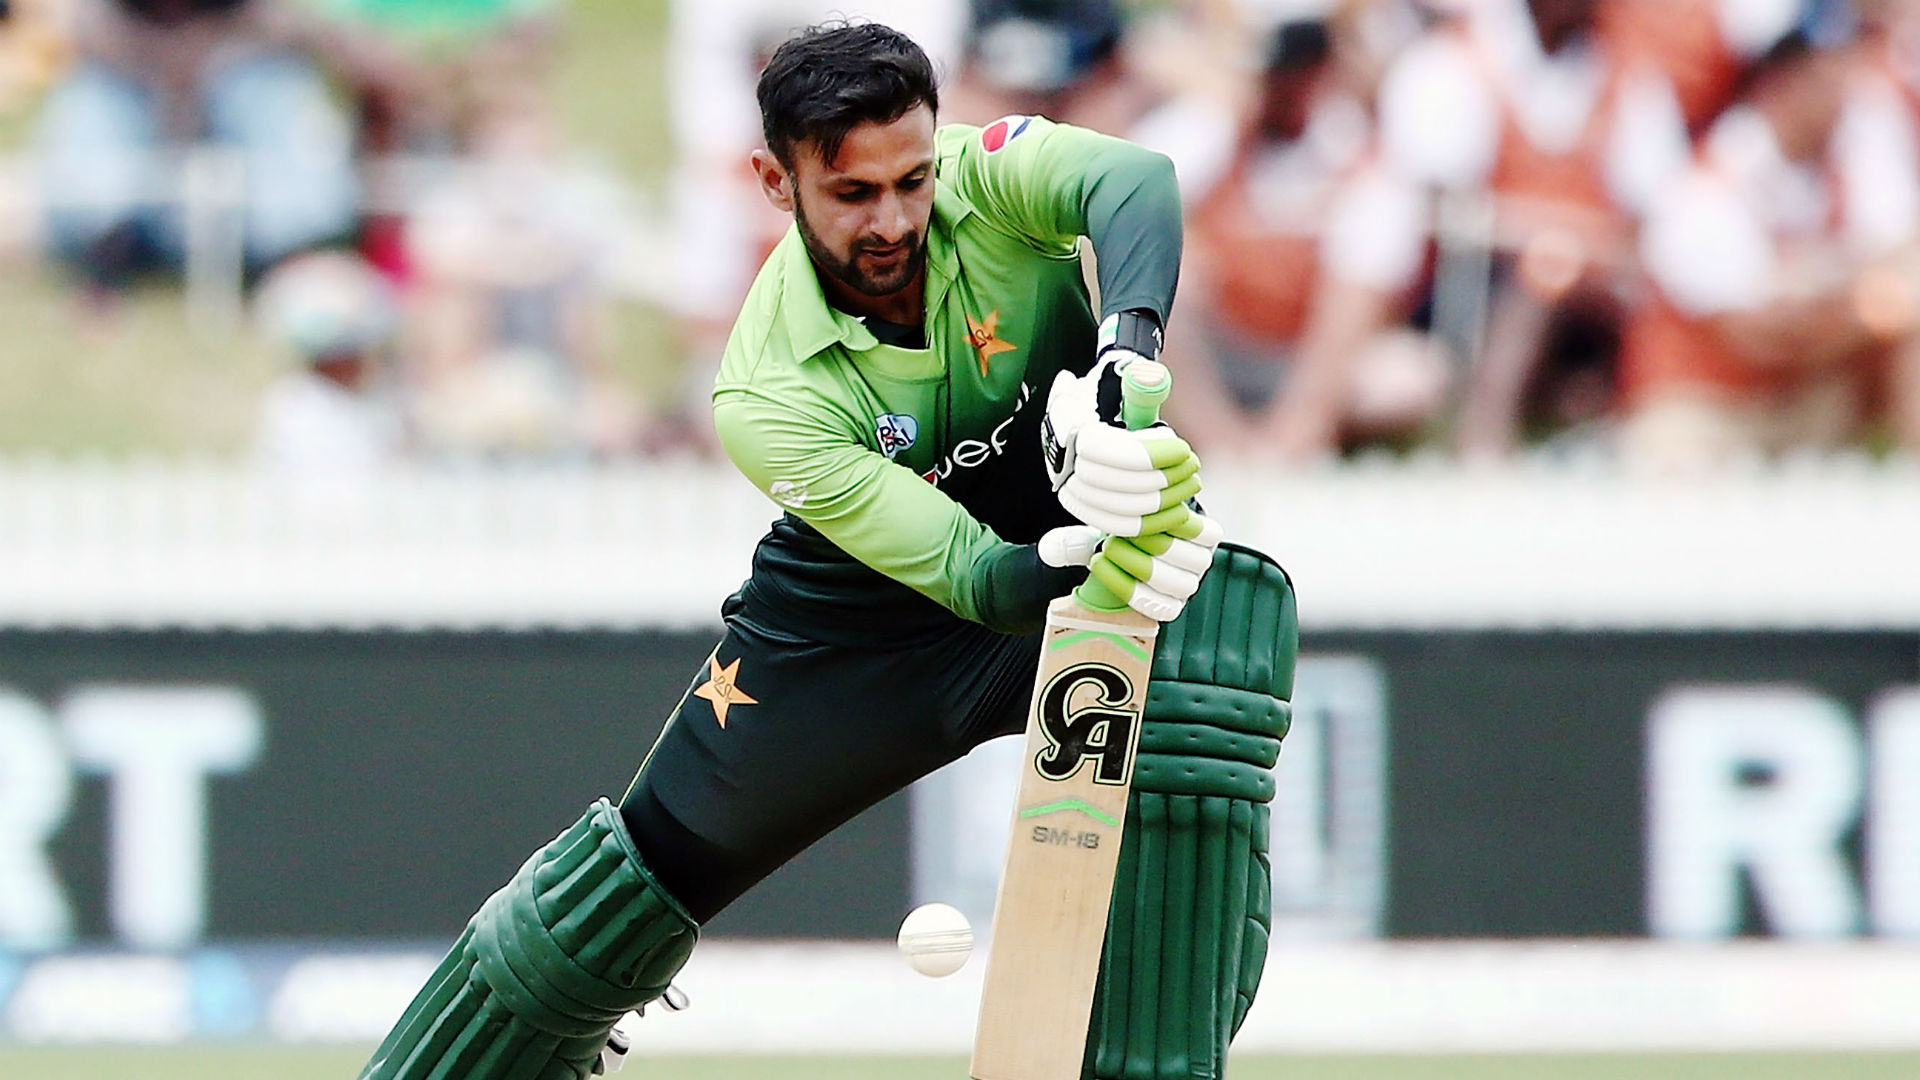 West Indies were dismissed for only 60, slumping to the second-biggest Twenty20 international defeat of all time against Pakistan.